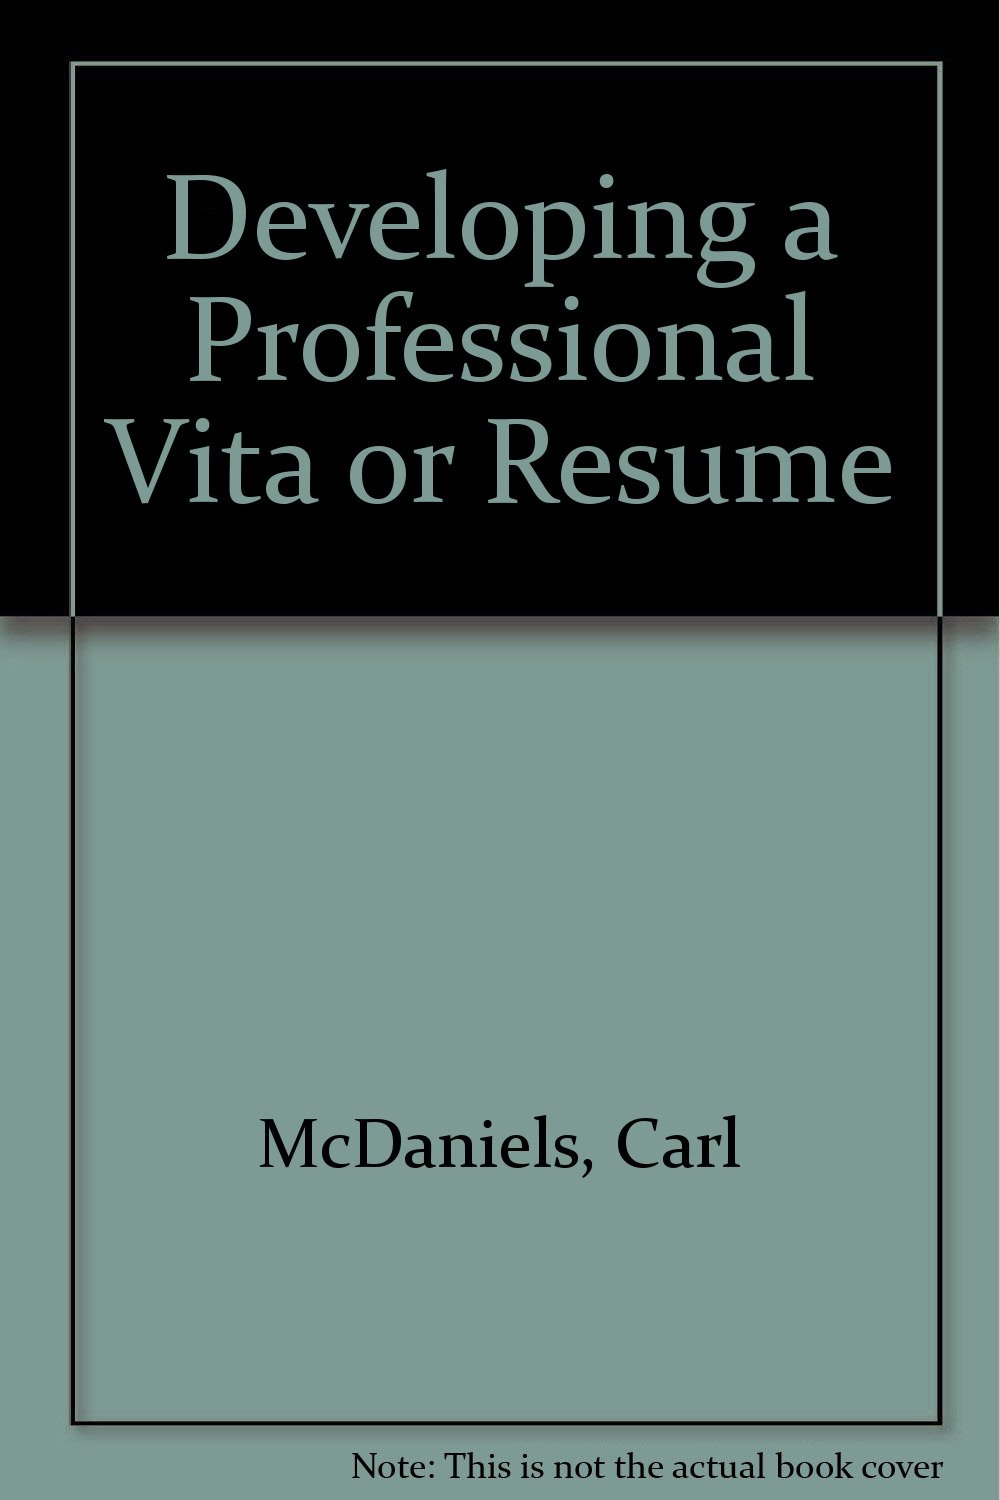 Developing A Professional Vita Or Resume Carl Mcdaniels